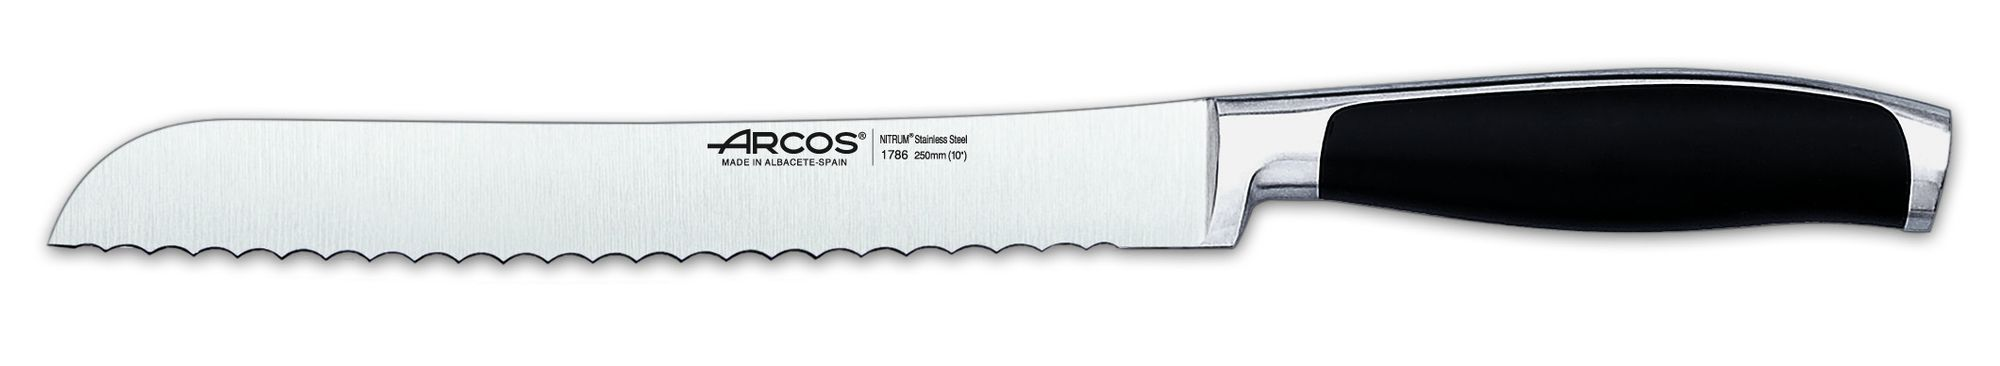 Bread Knife Arcos ref.: 178700